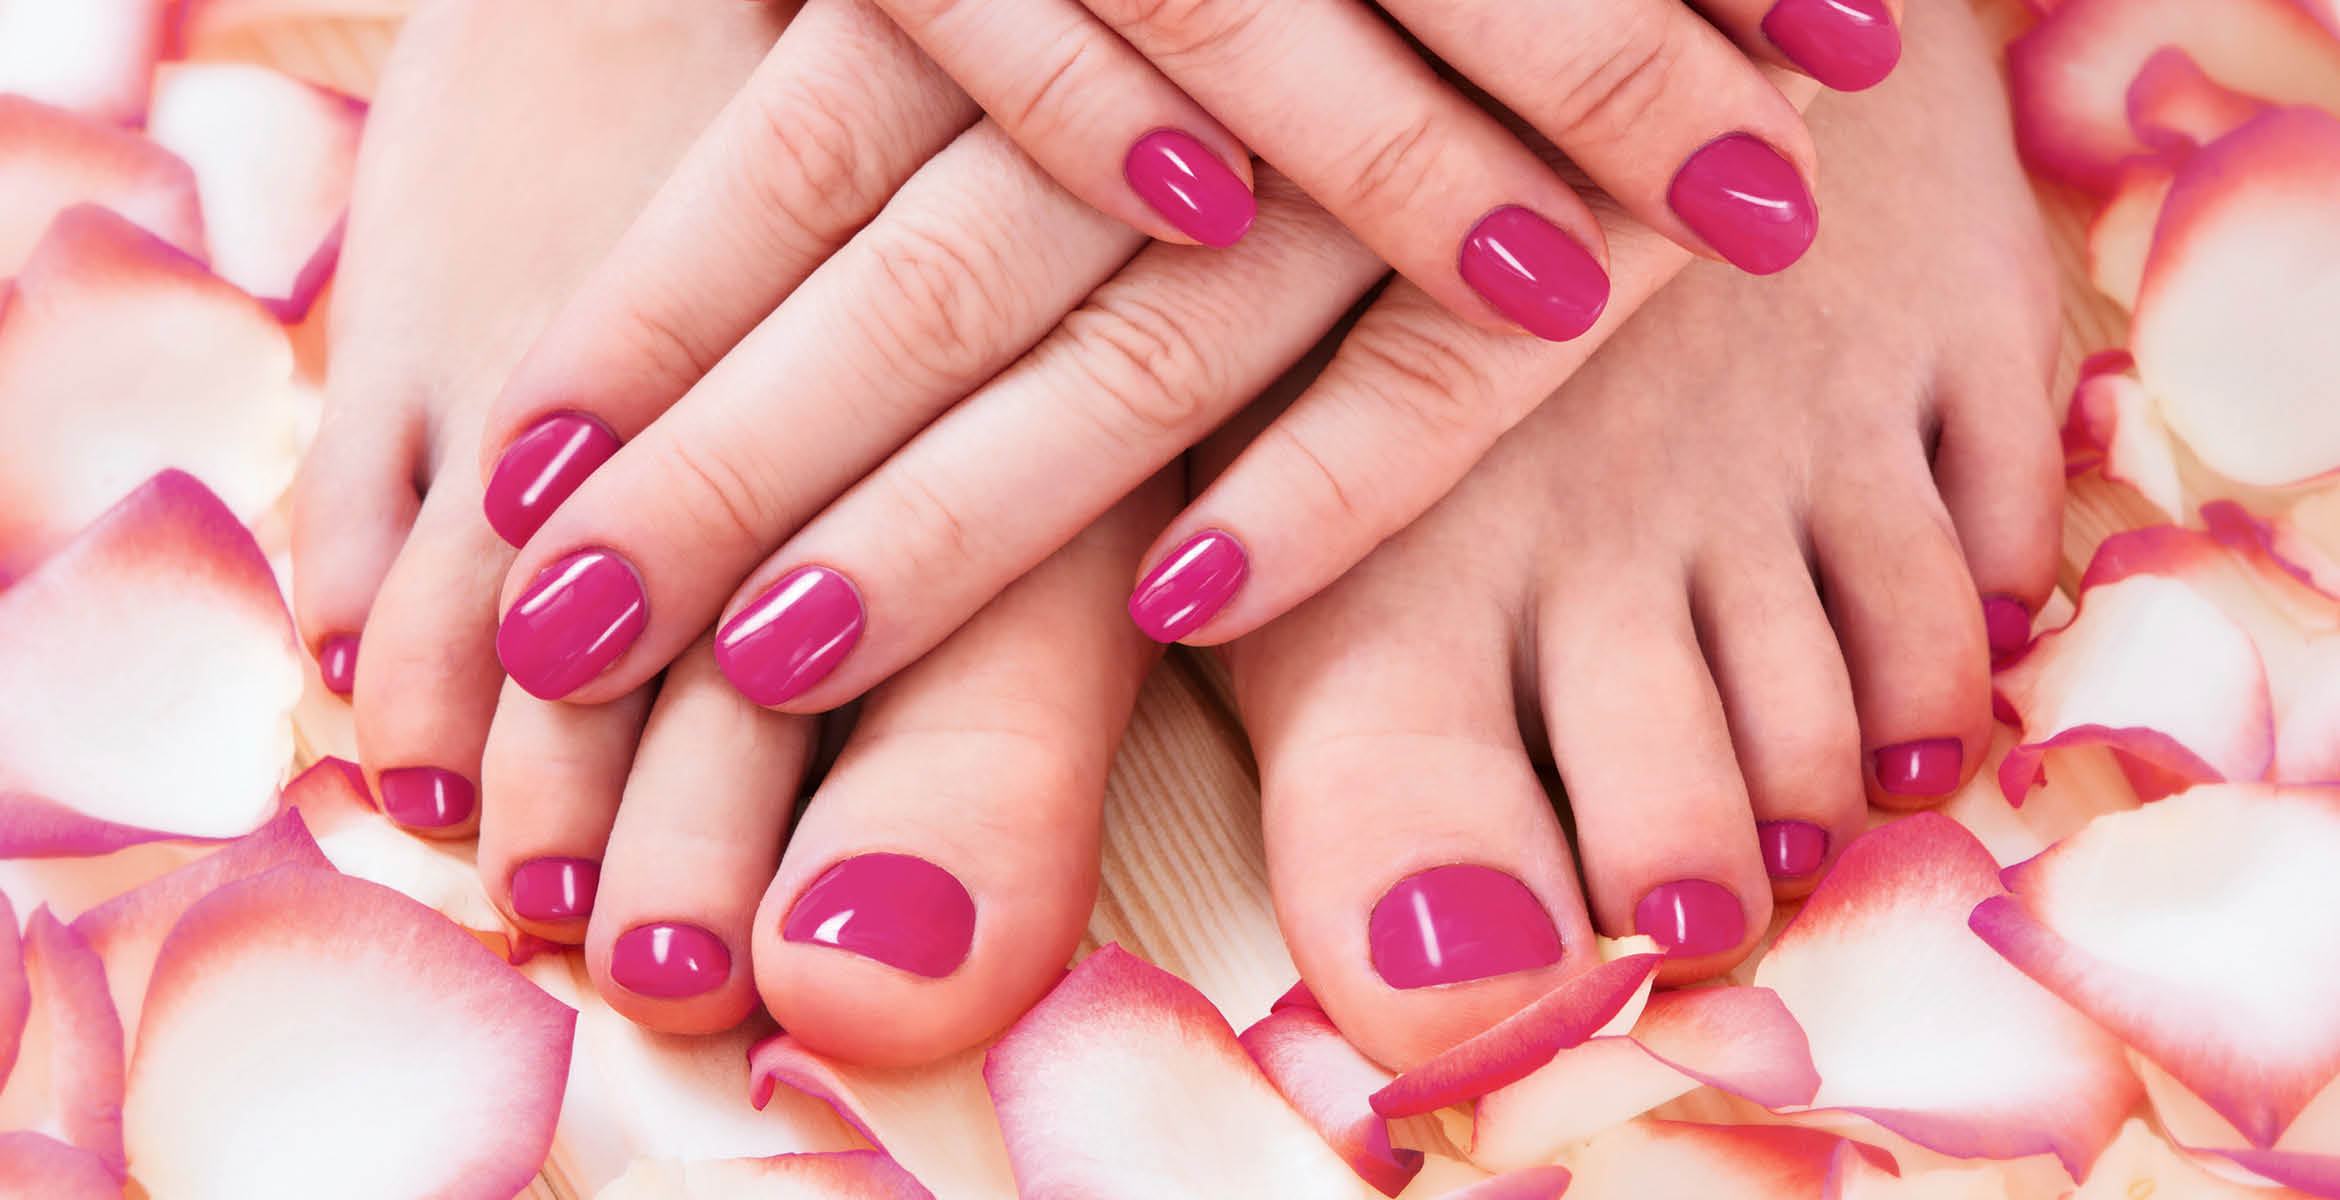 Picture of hands and feet from a manicure and a pedicure at Nailology Spa in Kansas City, MO.